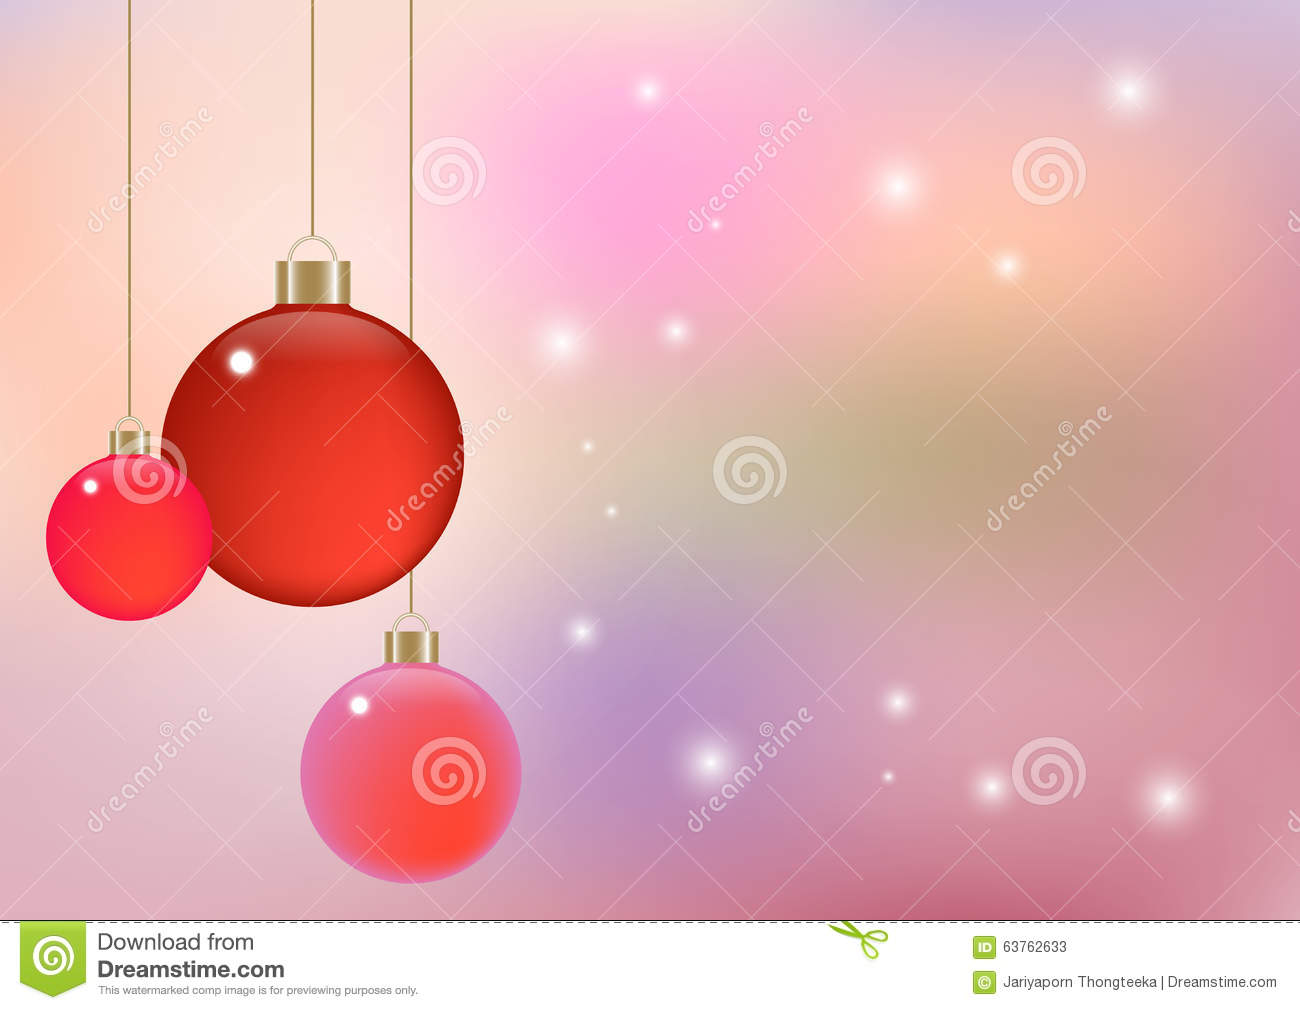 Soft Color Abstract Background Vector Illustration Can Use Christmas Or New Year Party Theme